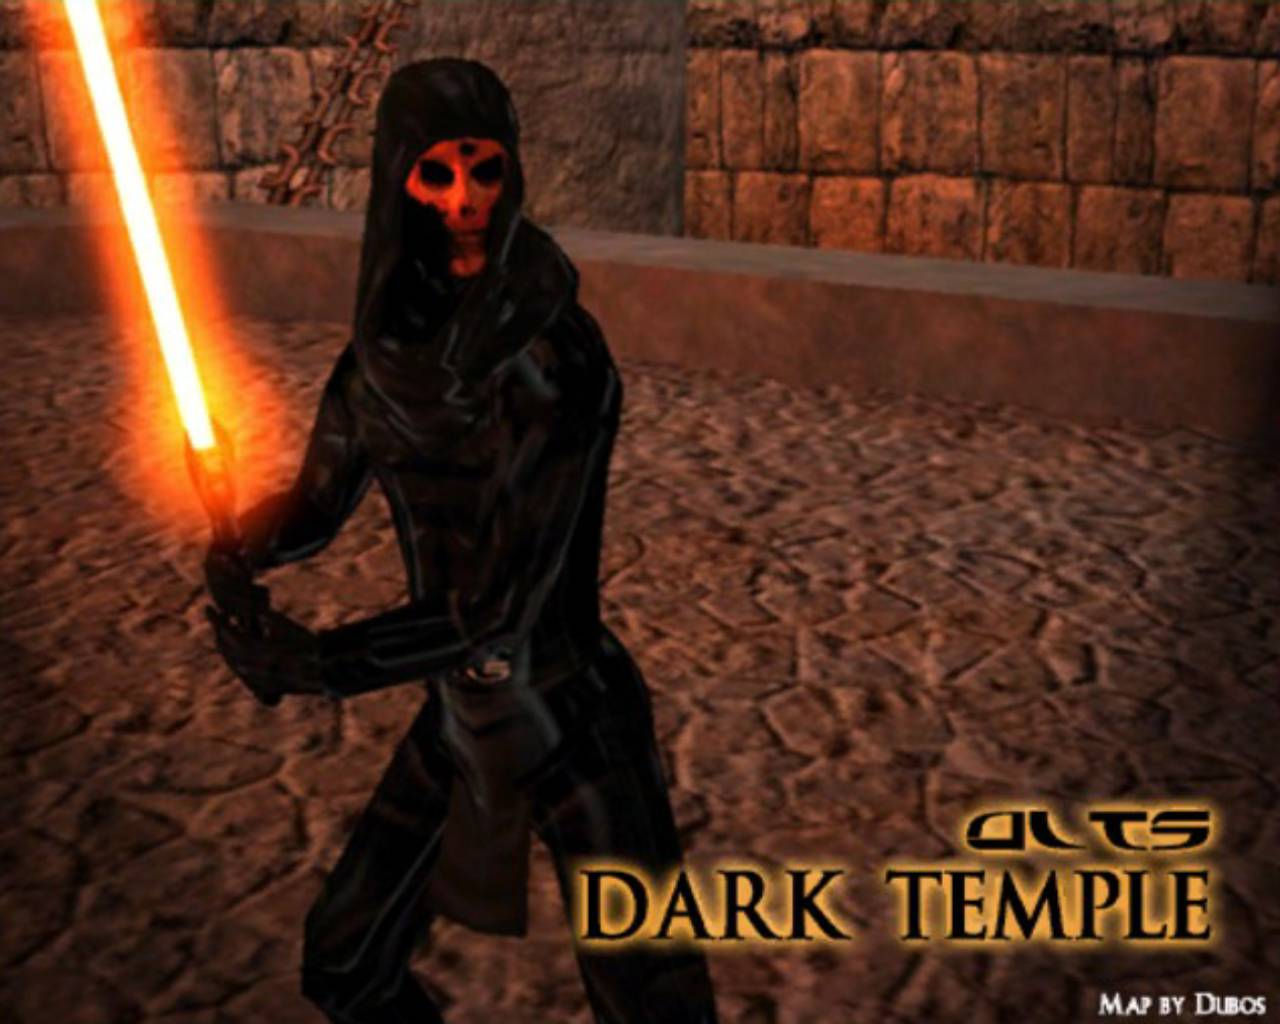 OLTS_darktemple_0